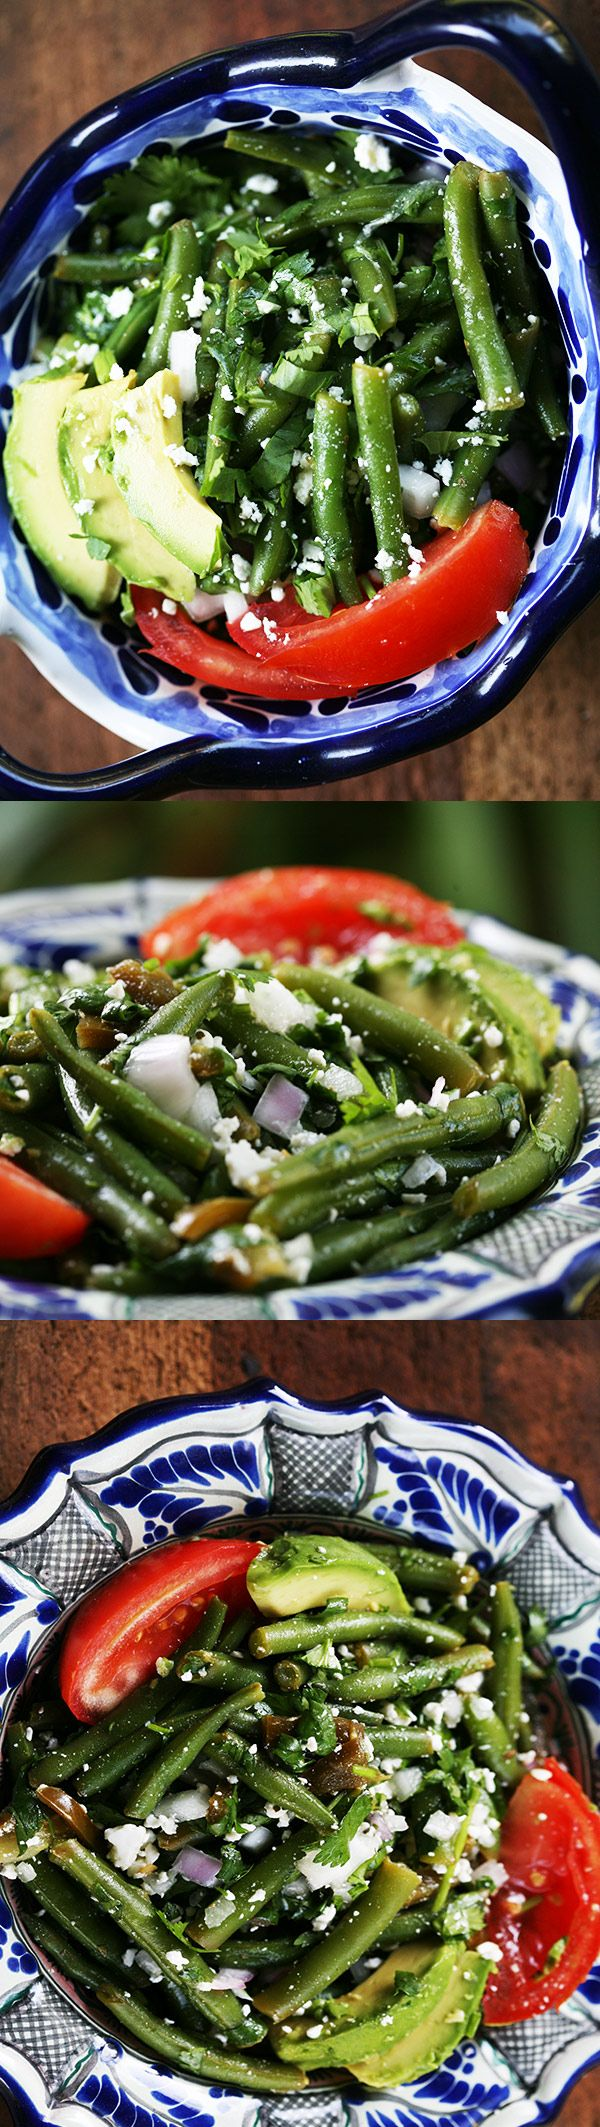 Mexican Green Bean Salad ~ Mexican green bean salad with fresh green beans, cilantro, jalapeno, red onion, cotija cheese, avocado, tomato, olive oil and lime juice. ~ SimplyRecipes.com